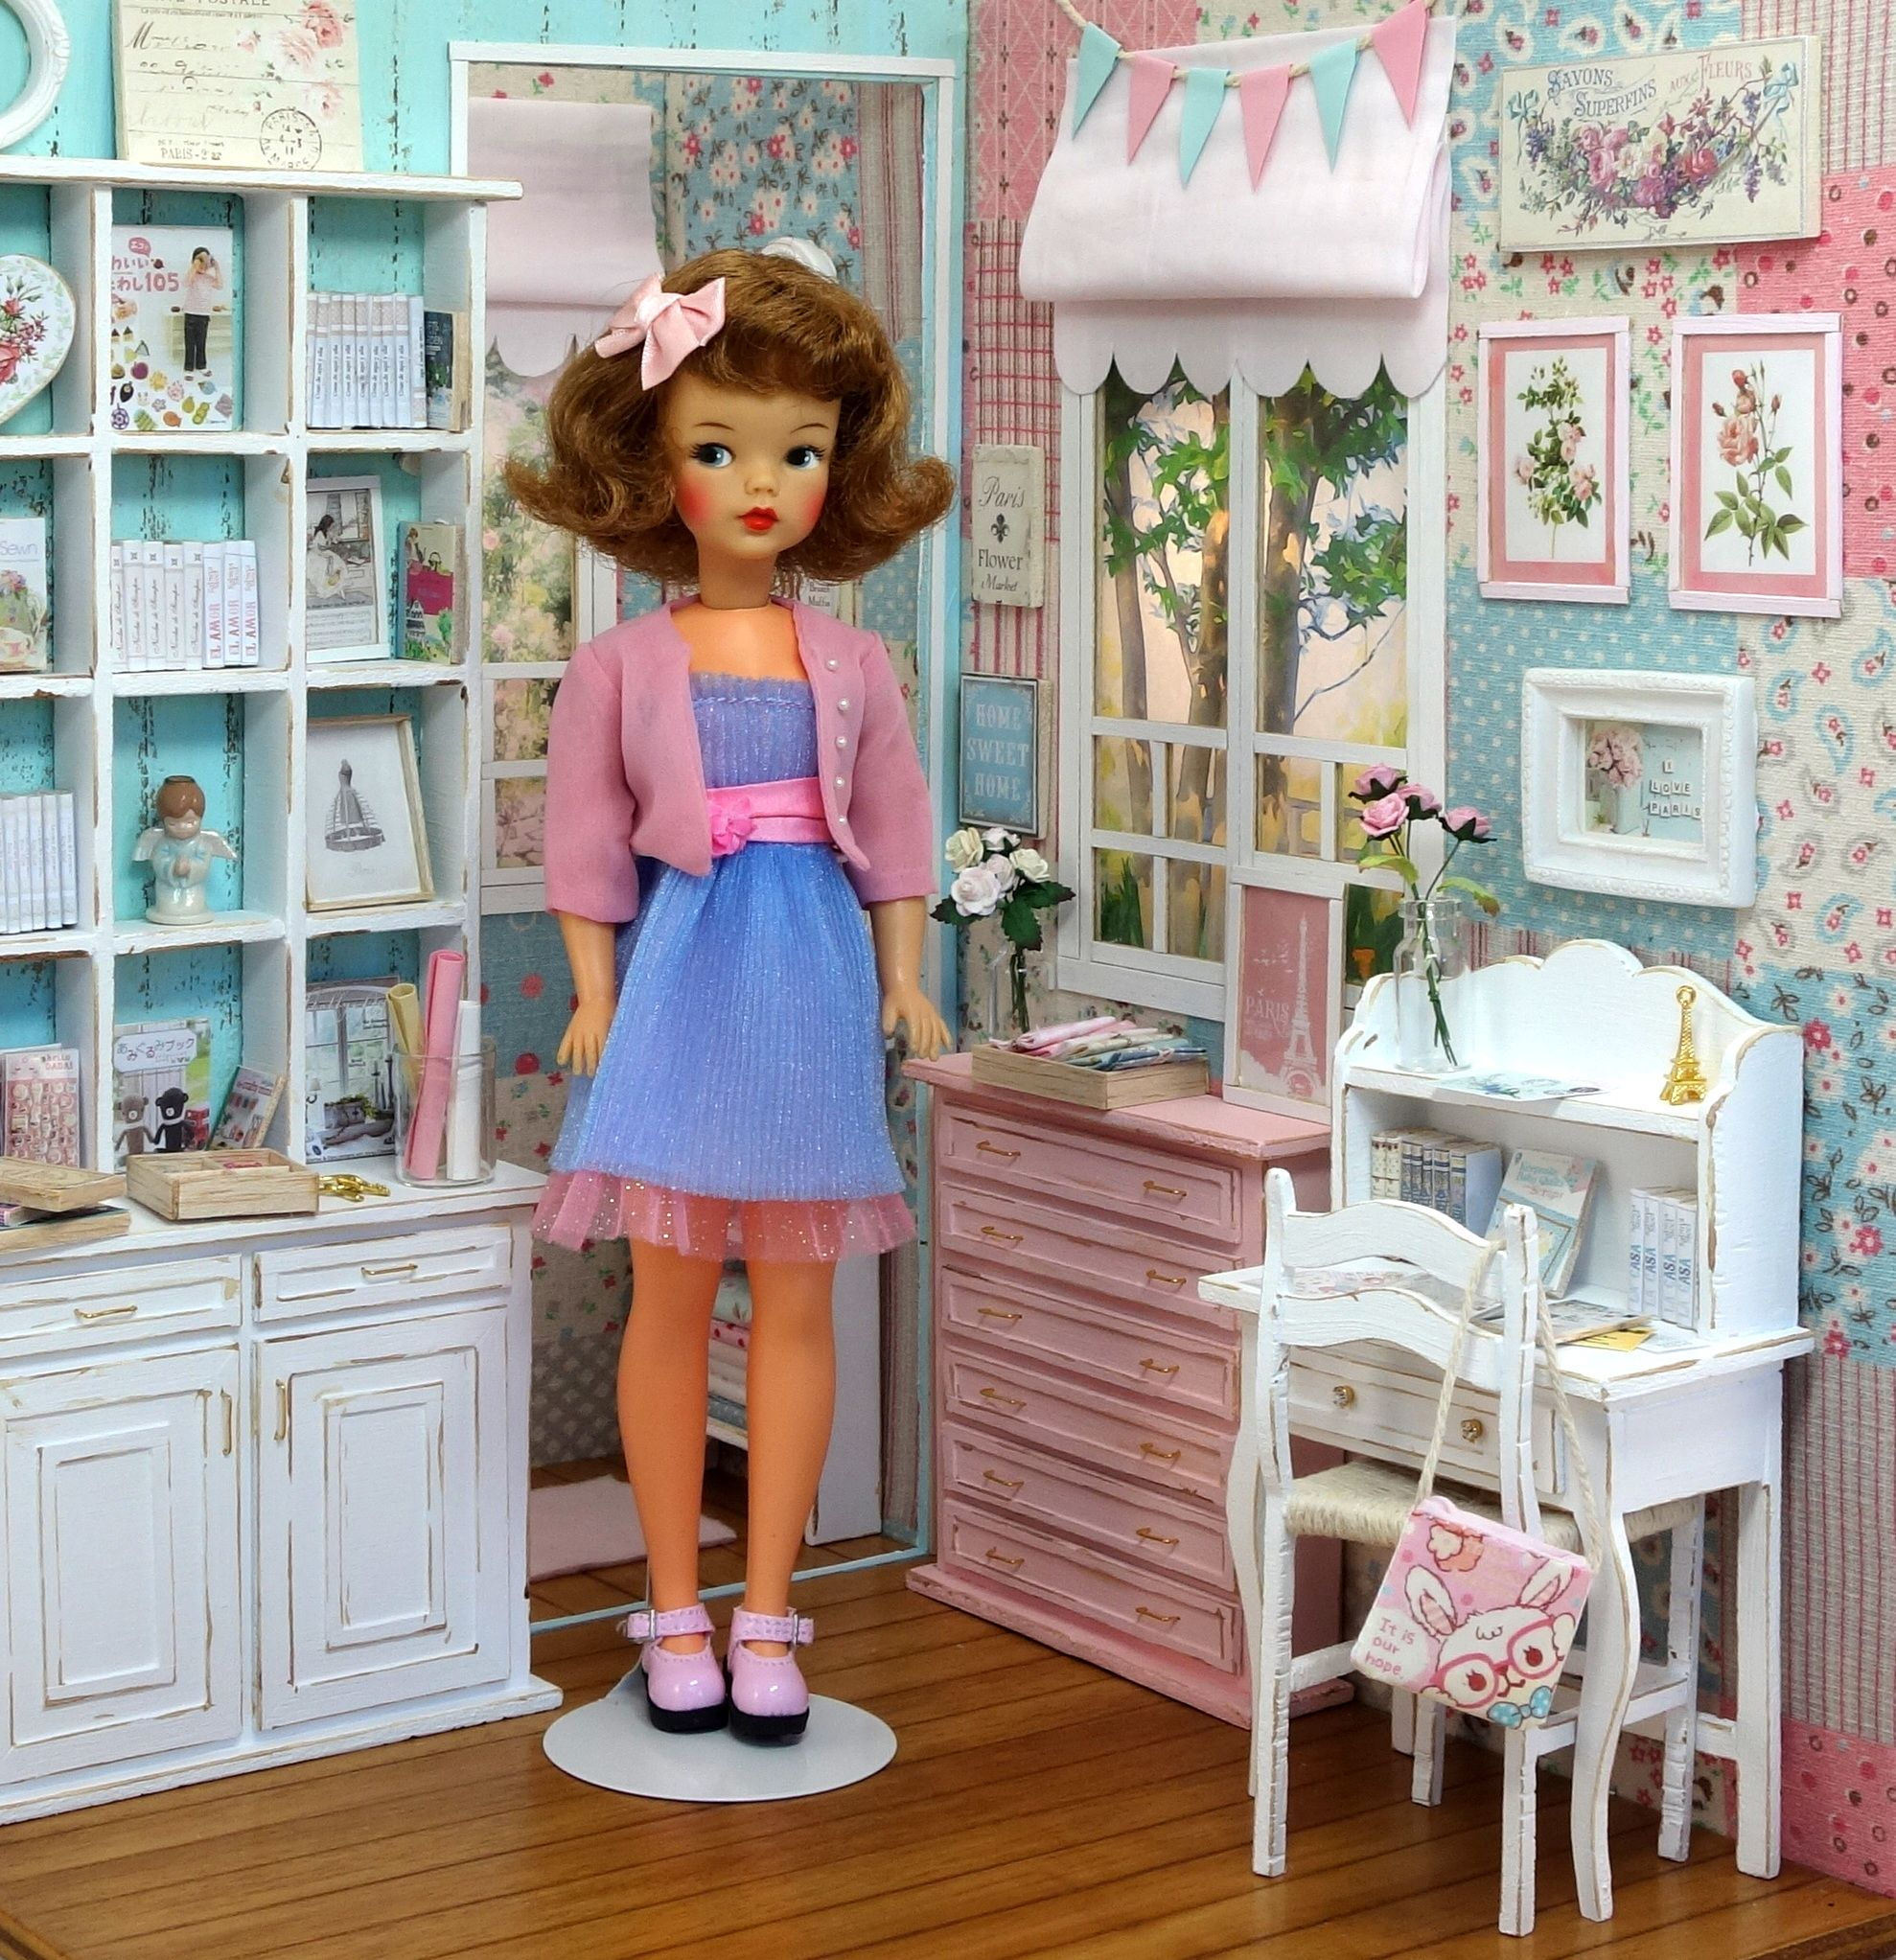 Vintage Tammy doll - photo by Debby Emerson